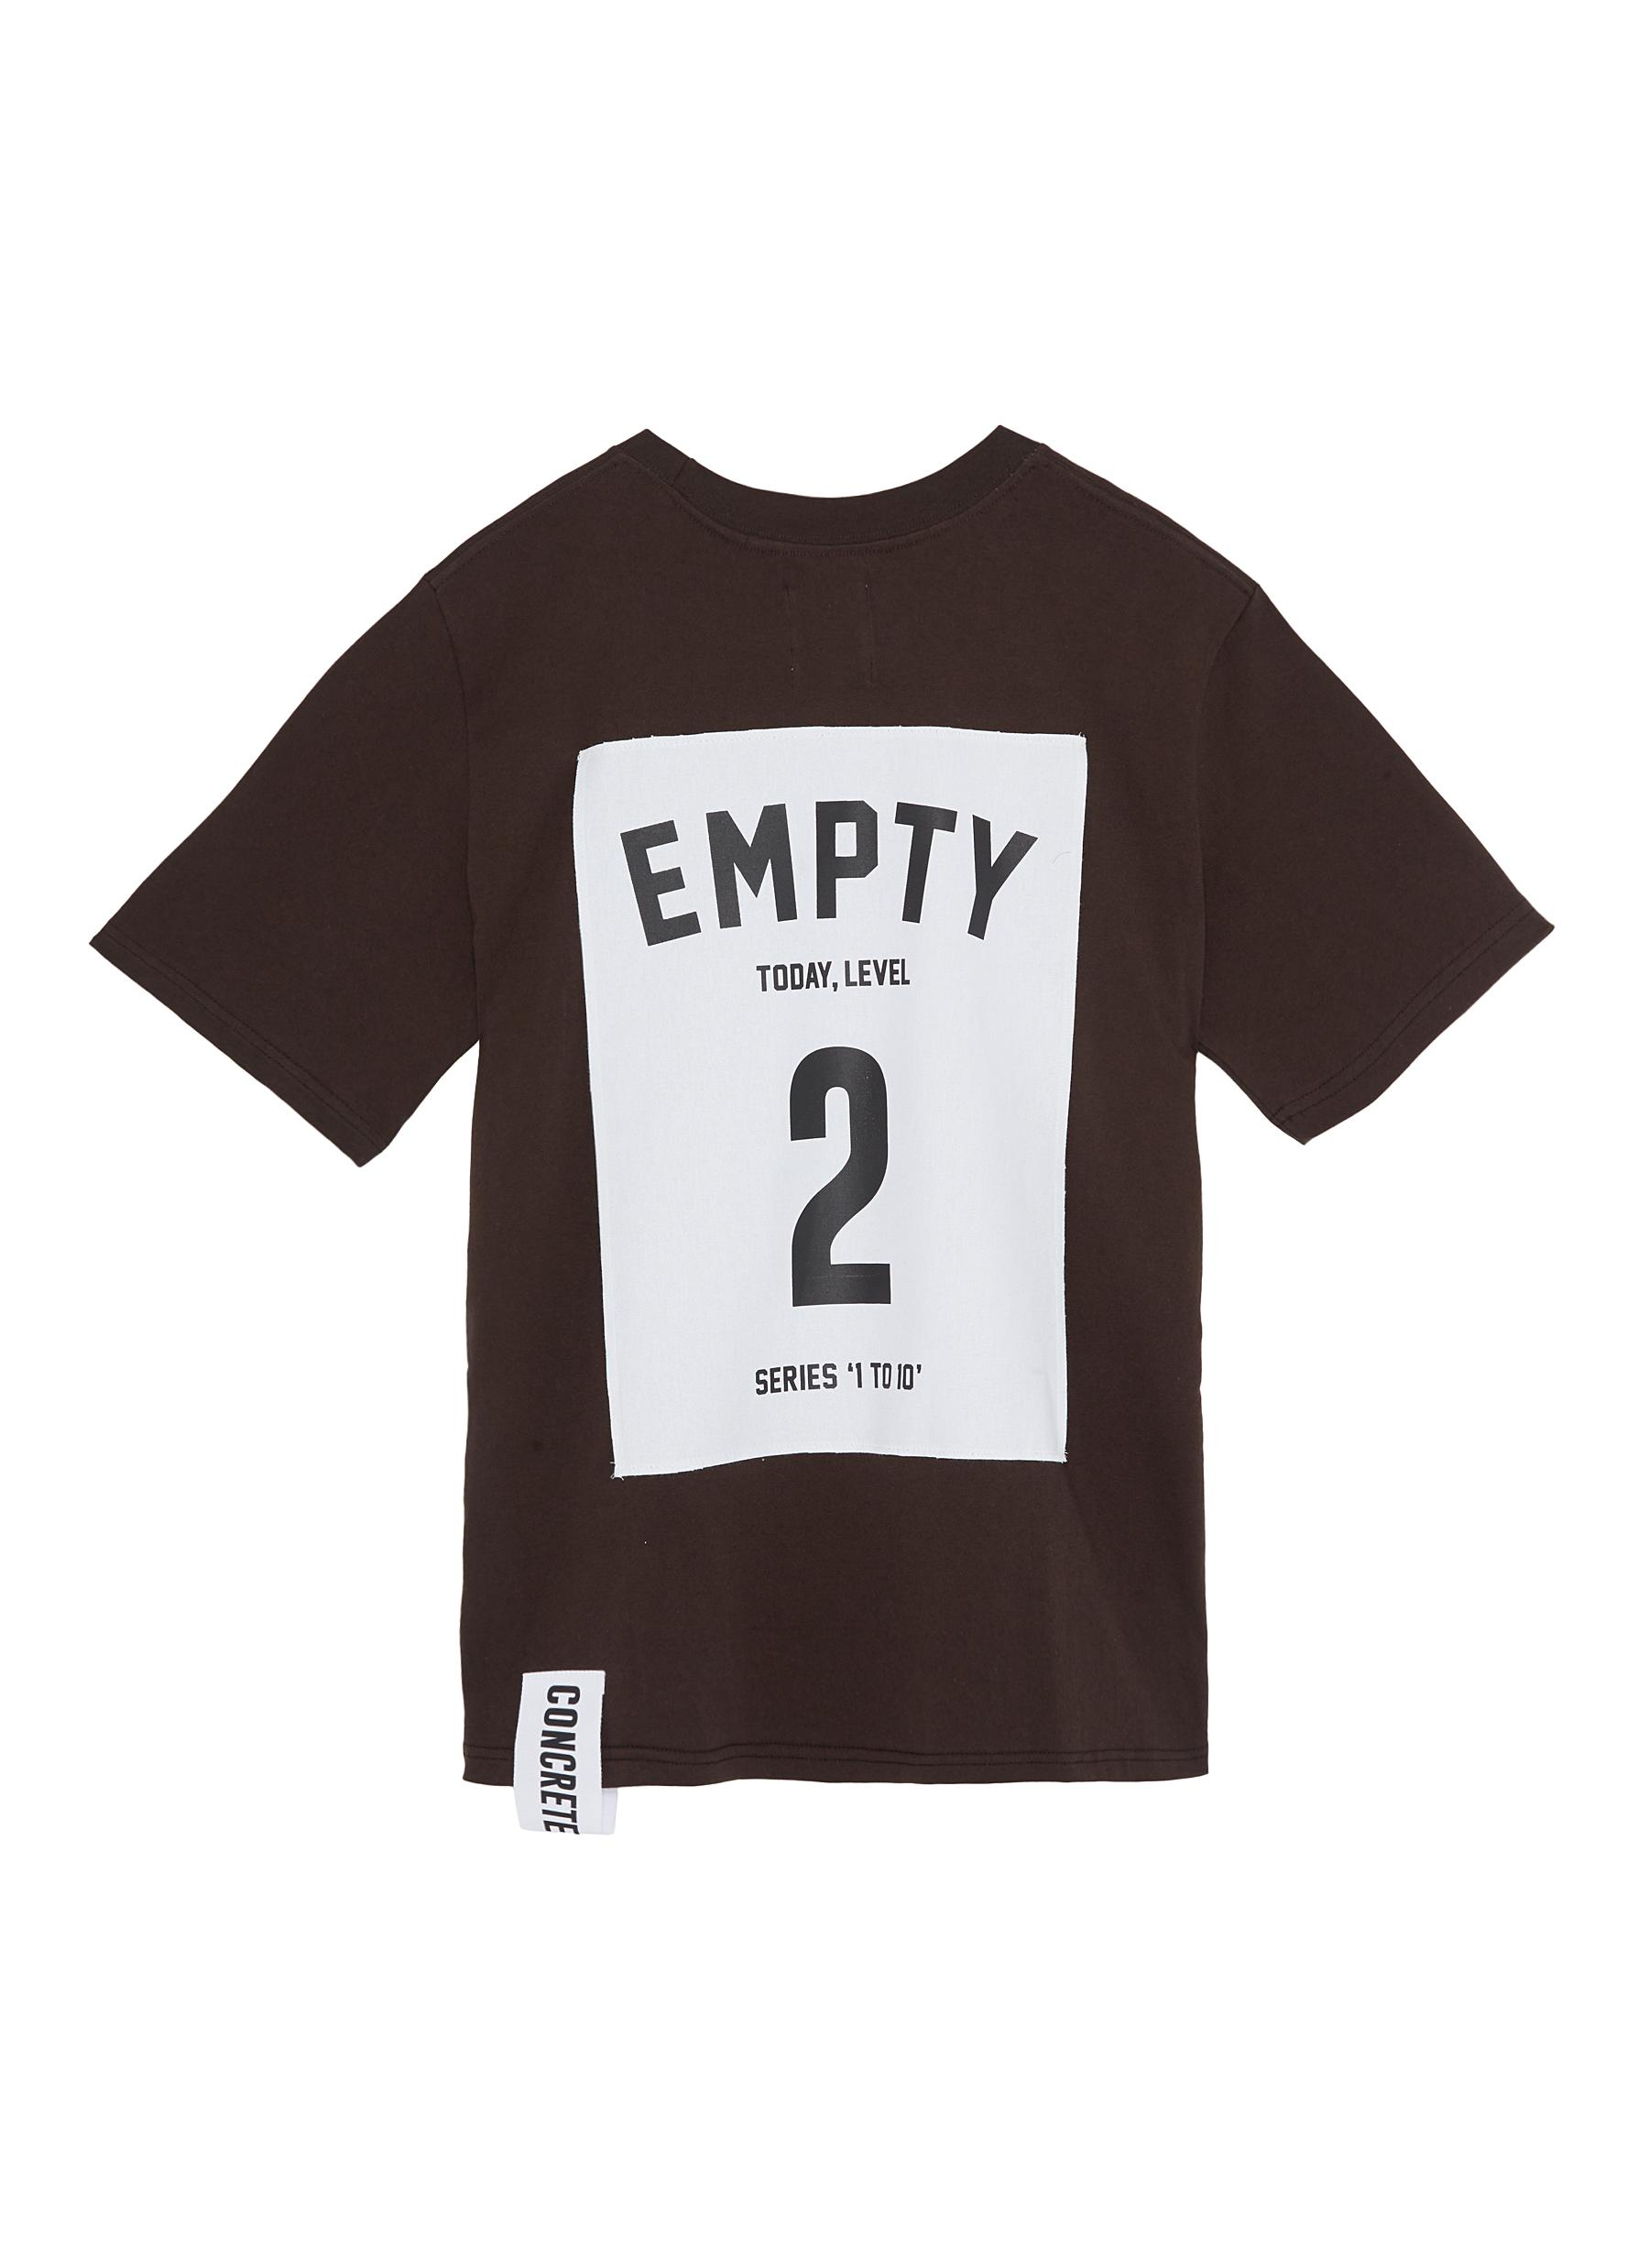 Series 1 to 10 oversized unisex T-shirt – 2 Empty by Studio Concrete